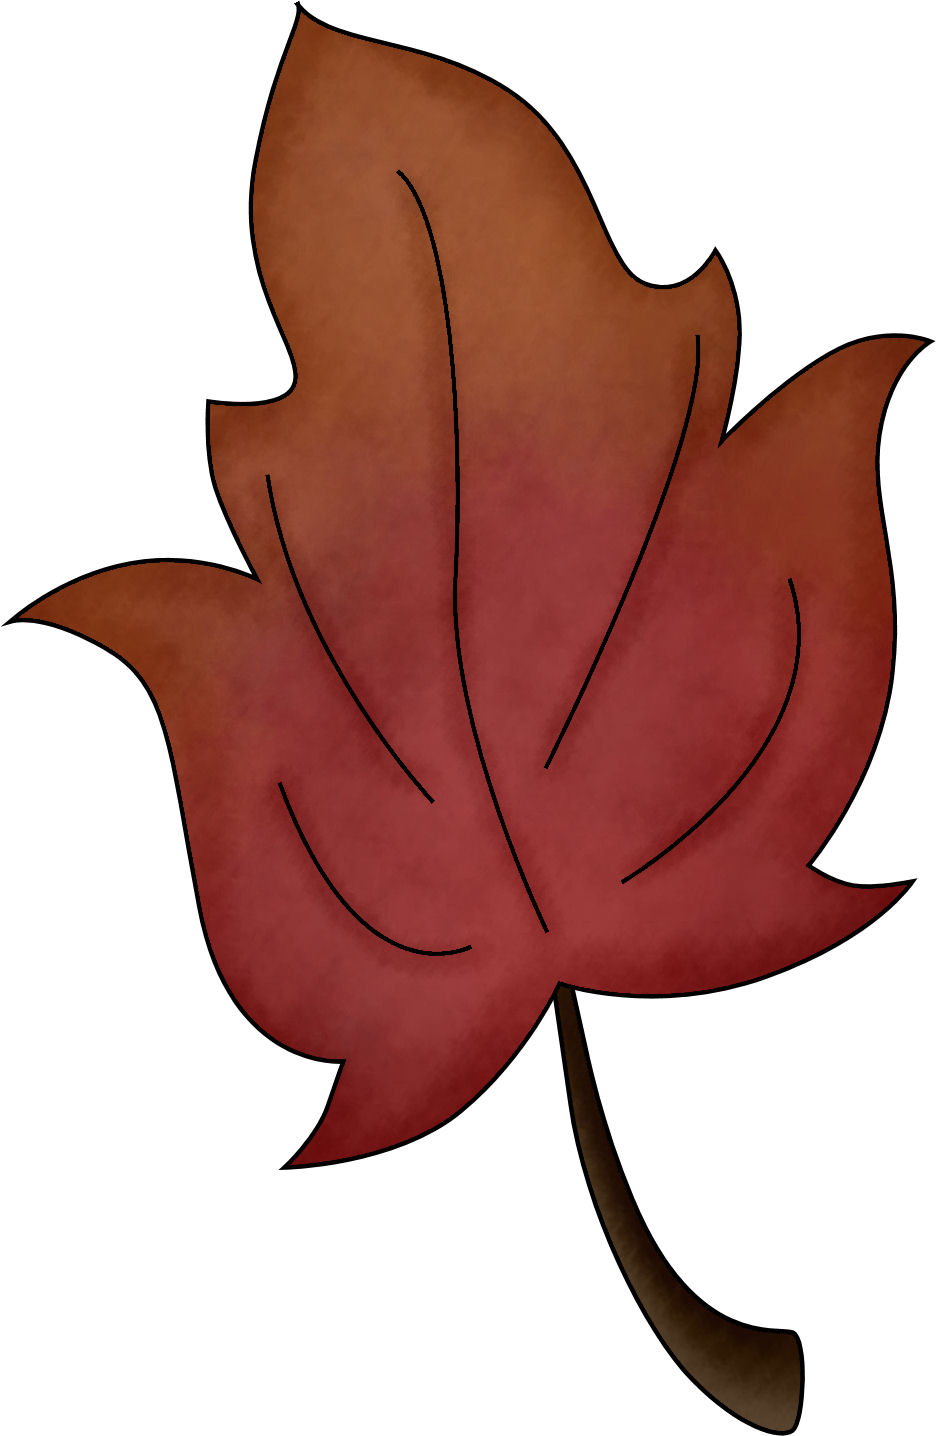 Best Fall Leaves Clip Art #22651 - Clipartion.com